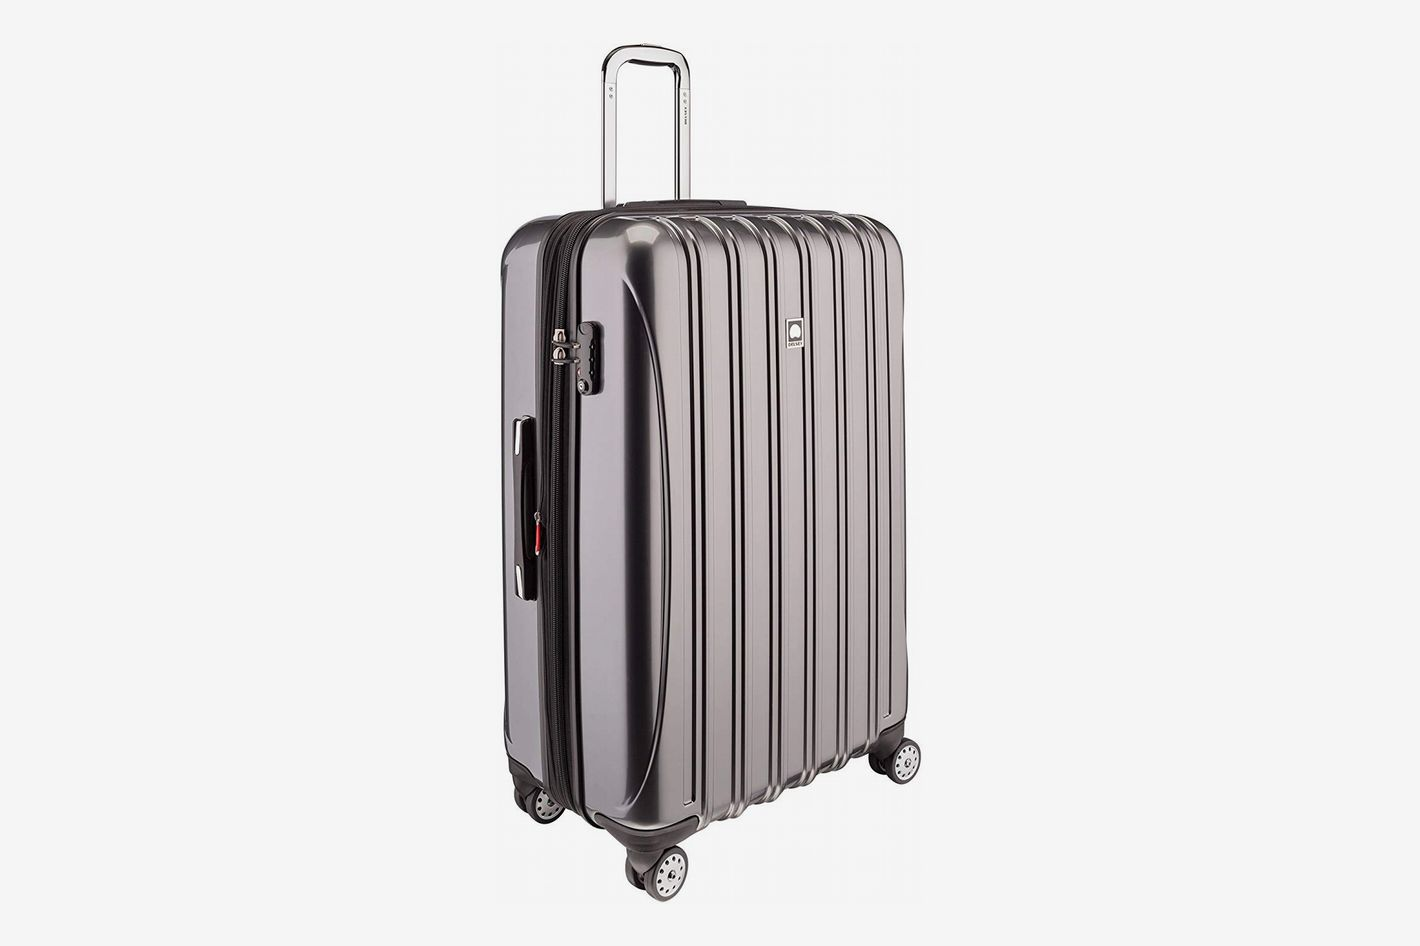 dcc3cc0e9 Best lightweight hard-sided spinner luggage for checking. Delsey Paris  Luggage Helium Aero Large Checked Luggage